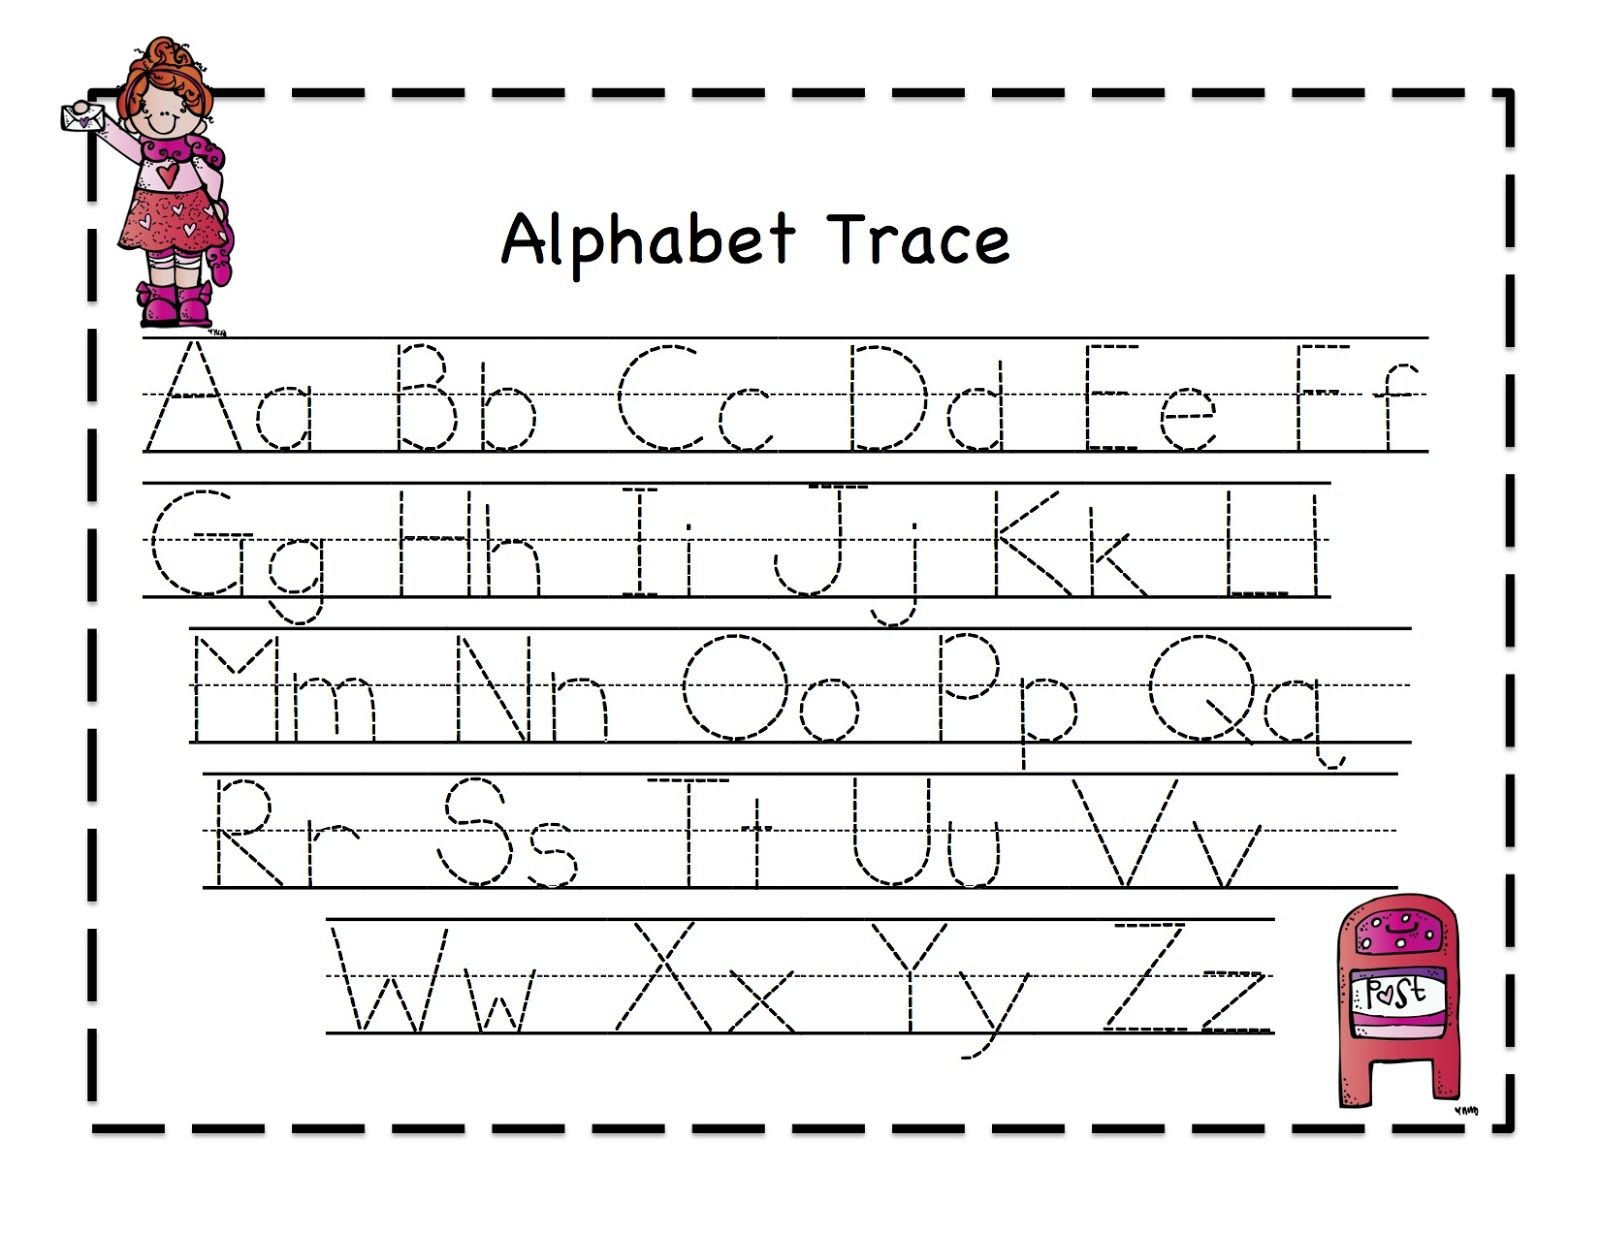 Abc Tracing Sheets For Preschool Kids | Alphabet Tracing inside Alphabet Tracing For Toddlers